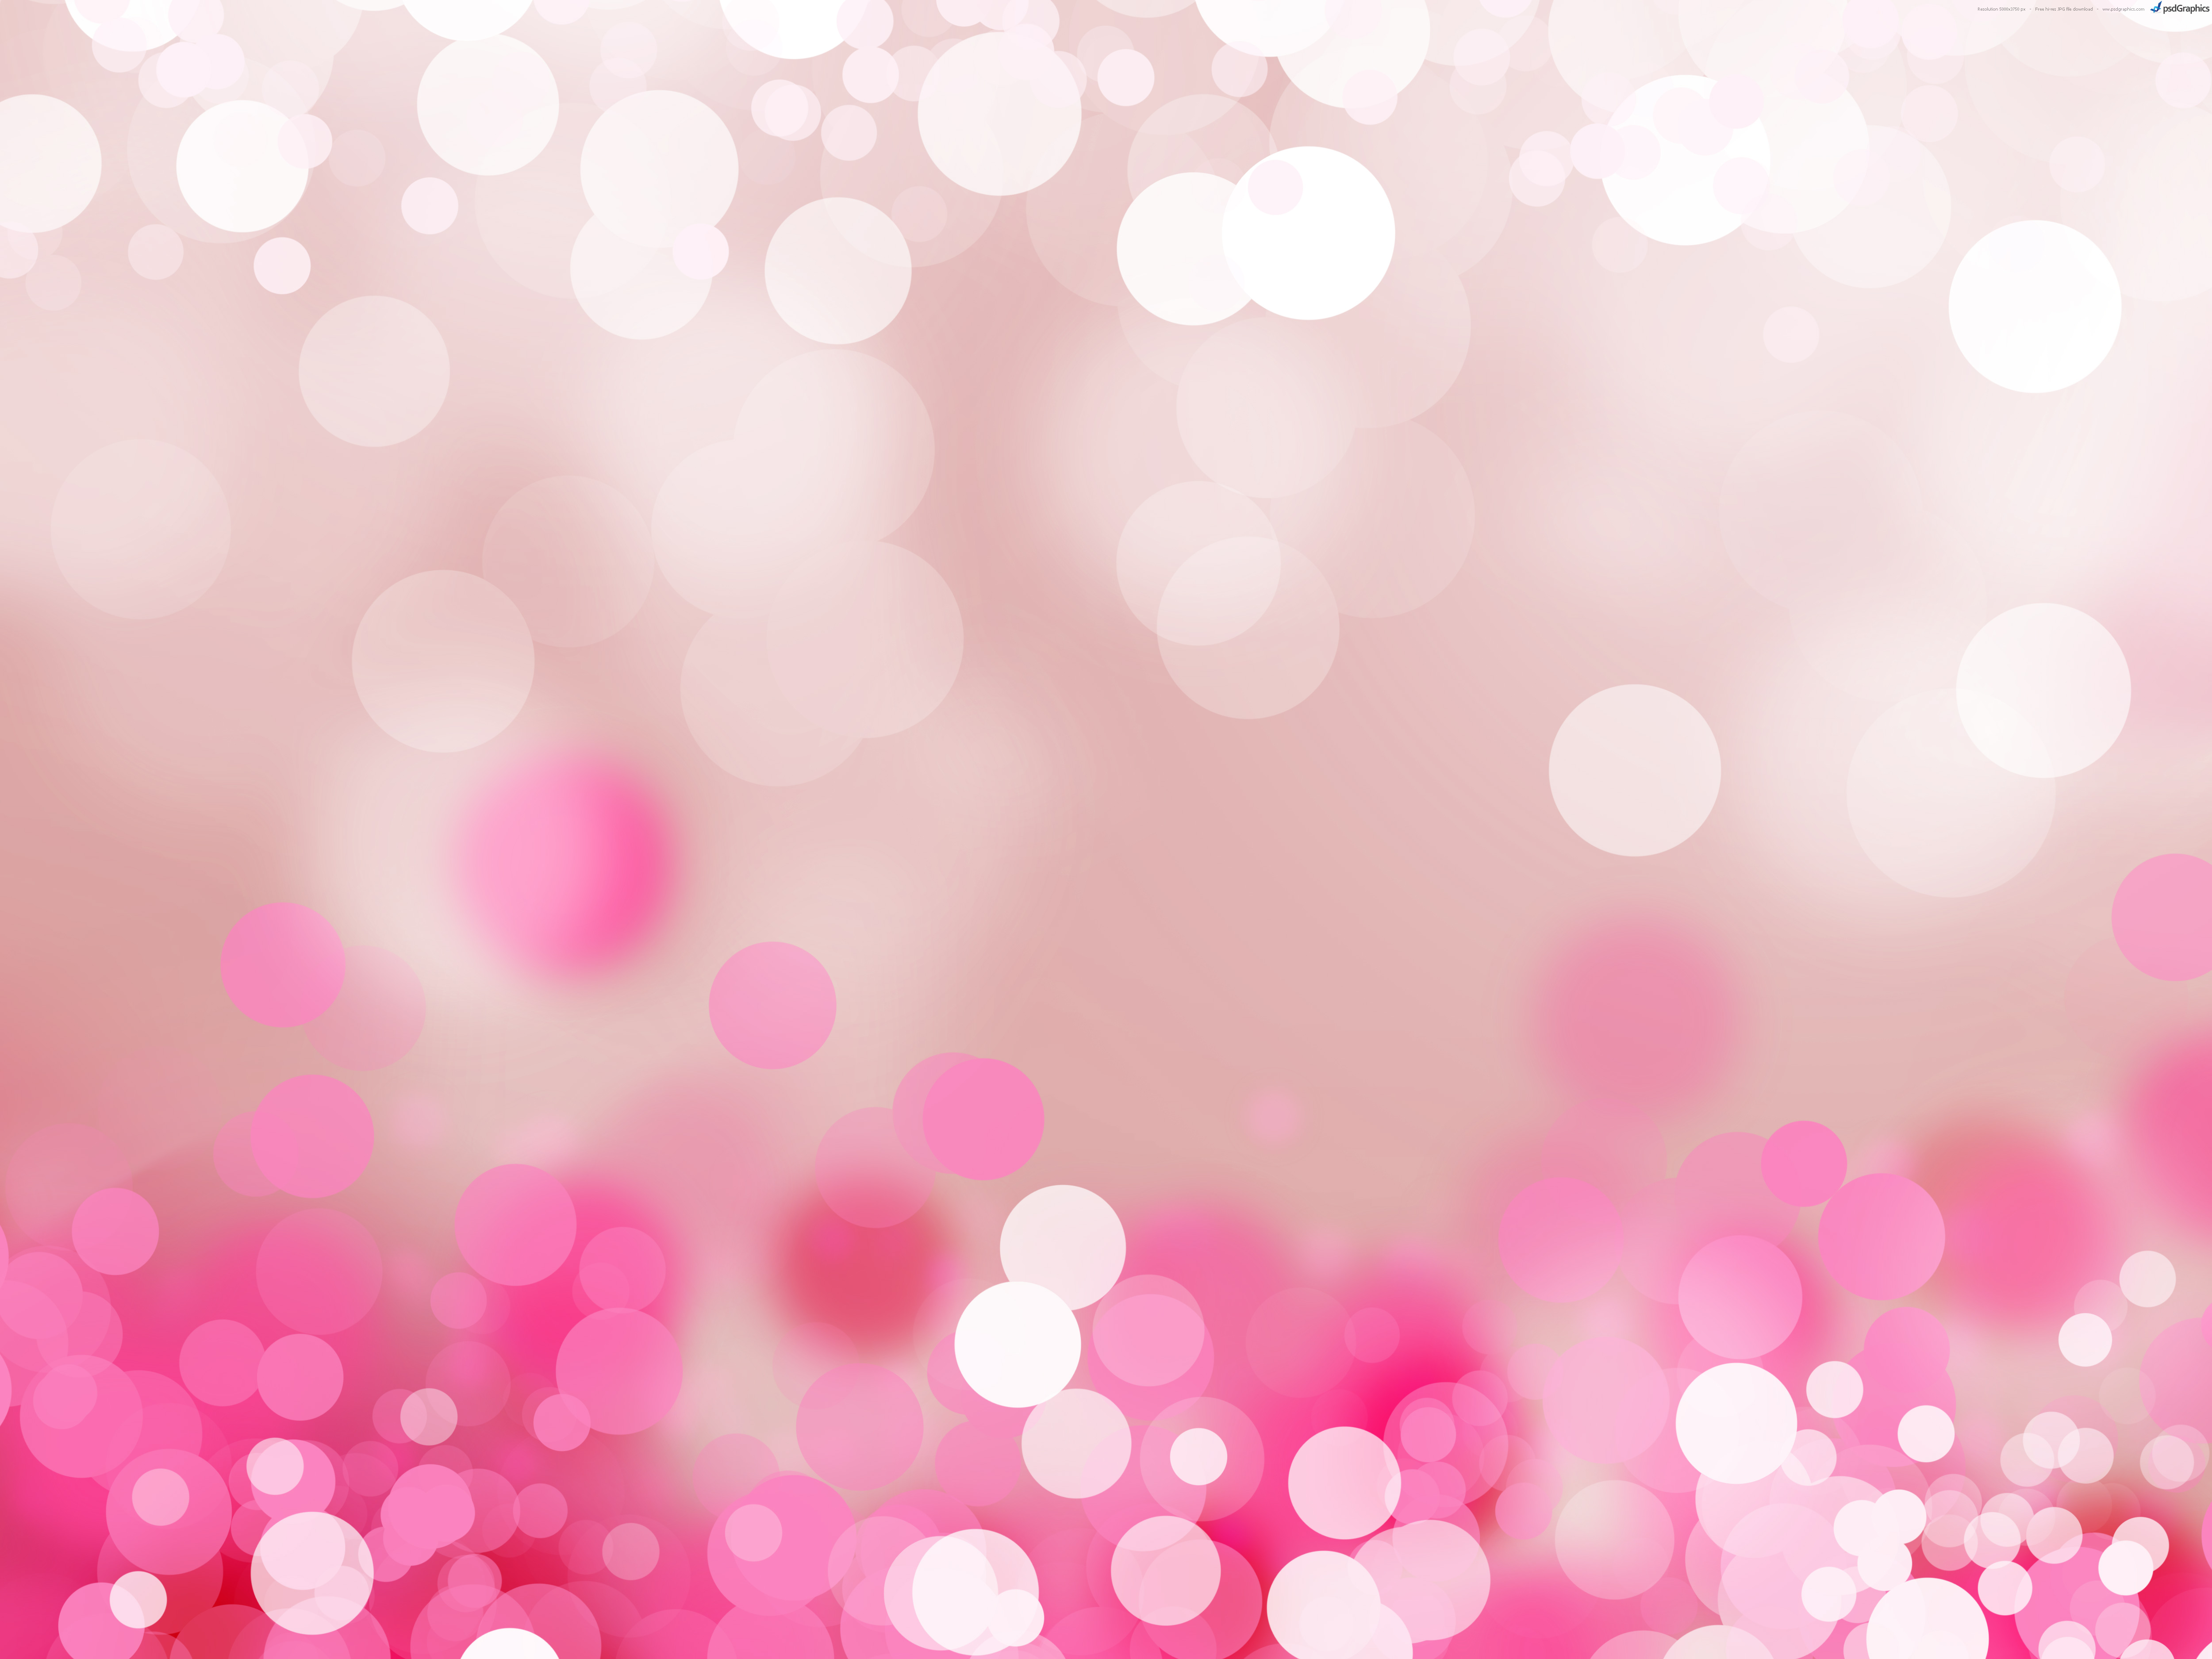 Light Pink Backgrounds wallpaper wallpaper hd background desktop 5000x3750